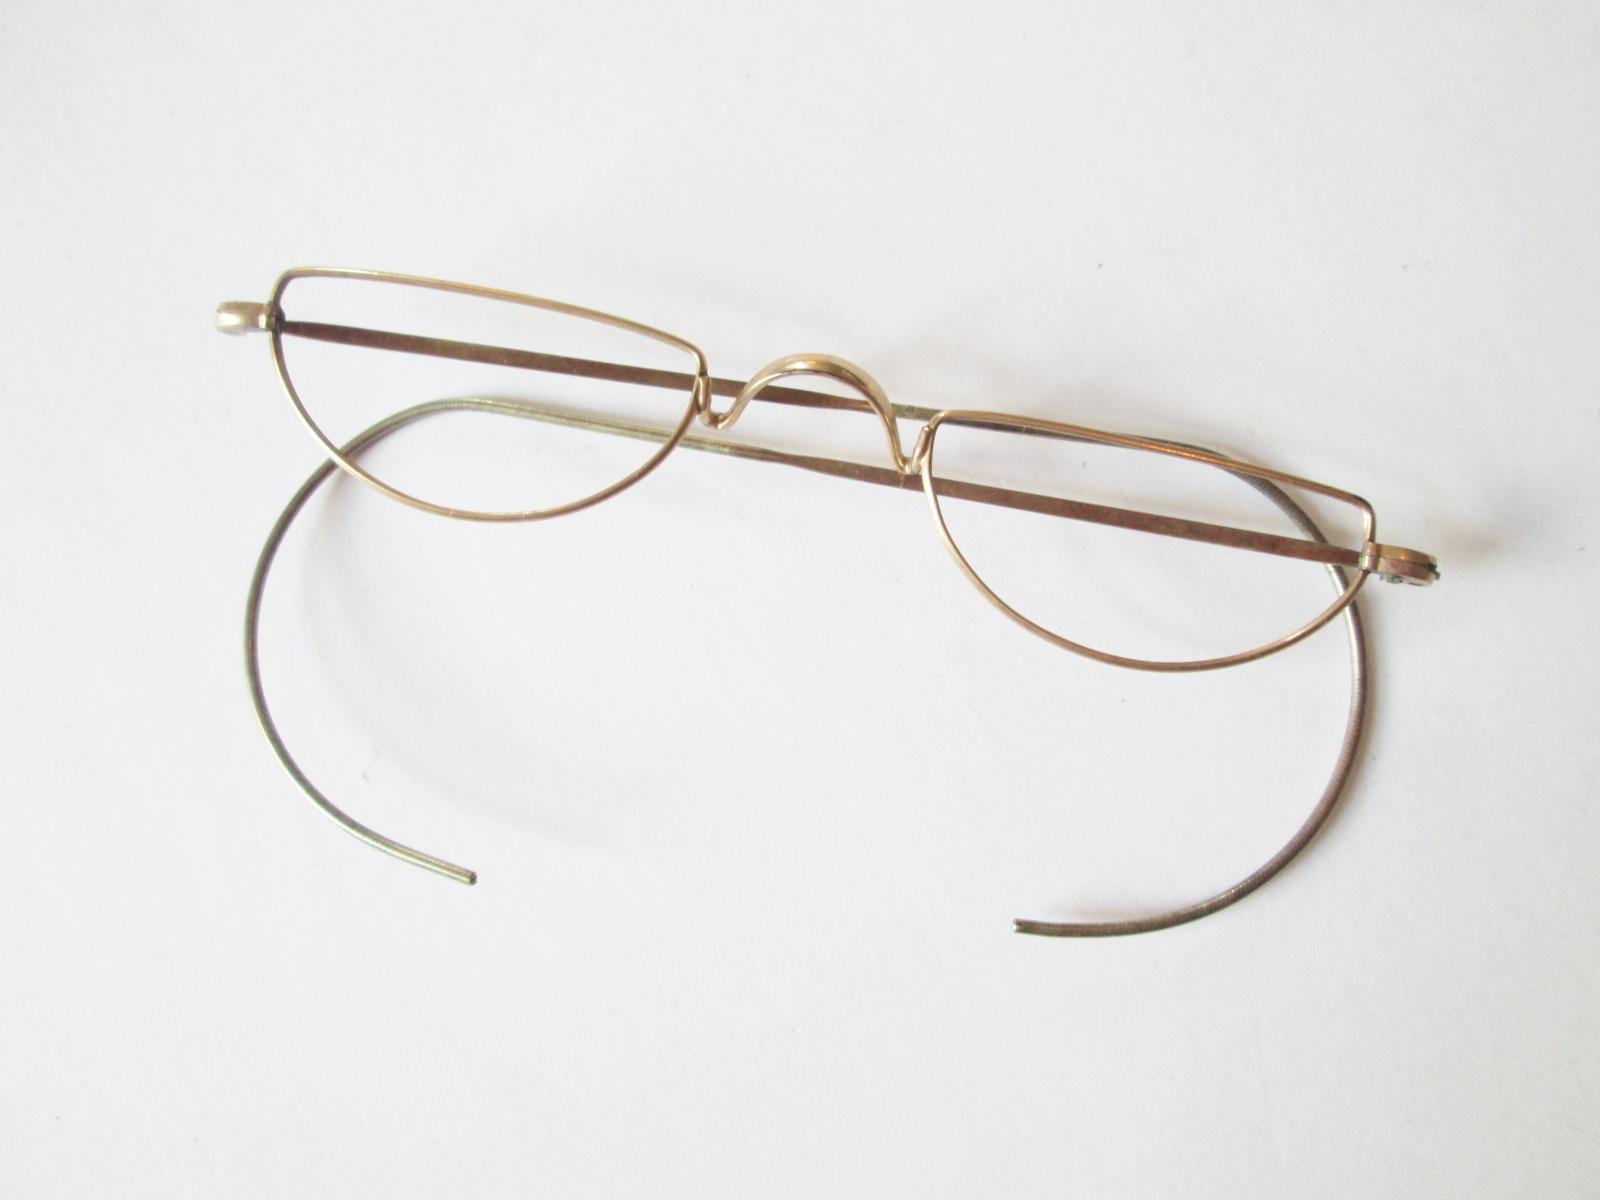 Antique Wire Rim Half Moon Reading Glasses Frames In Case ...